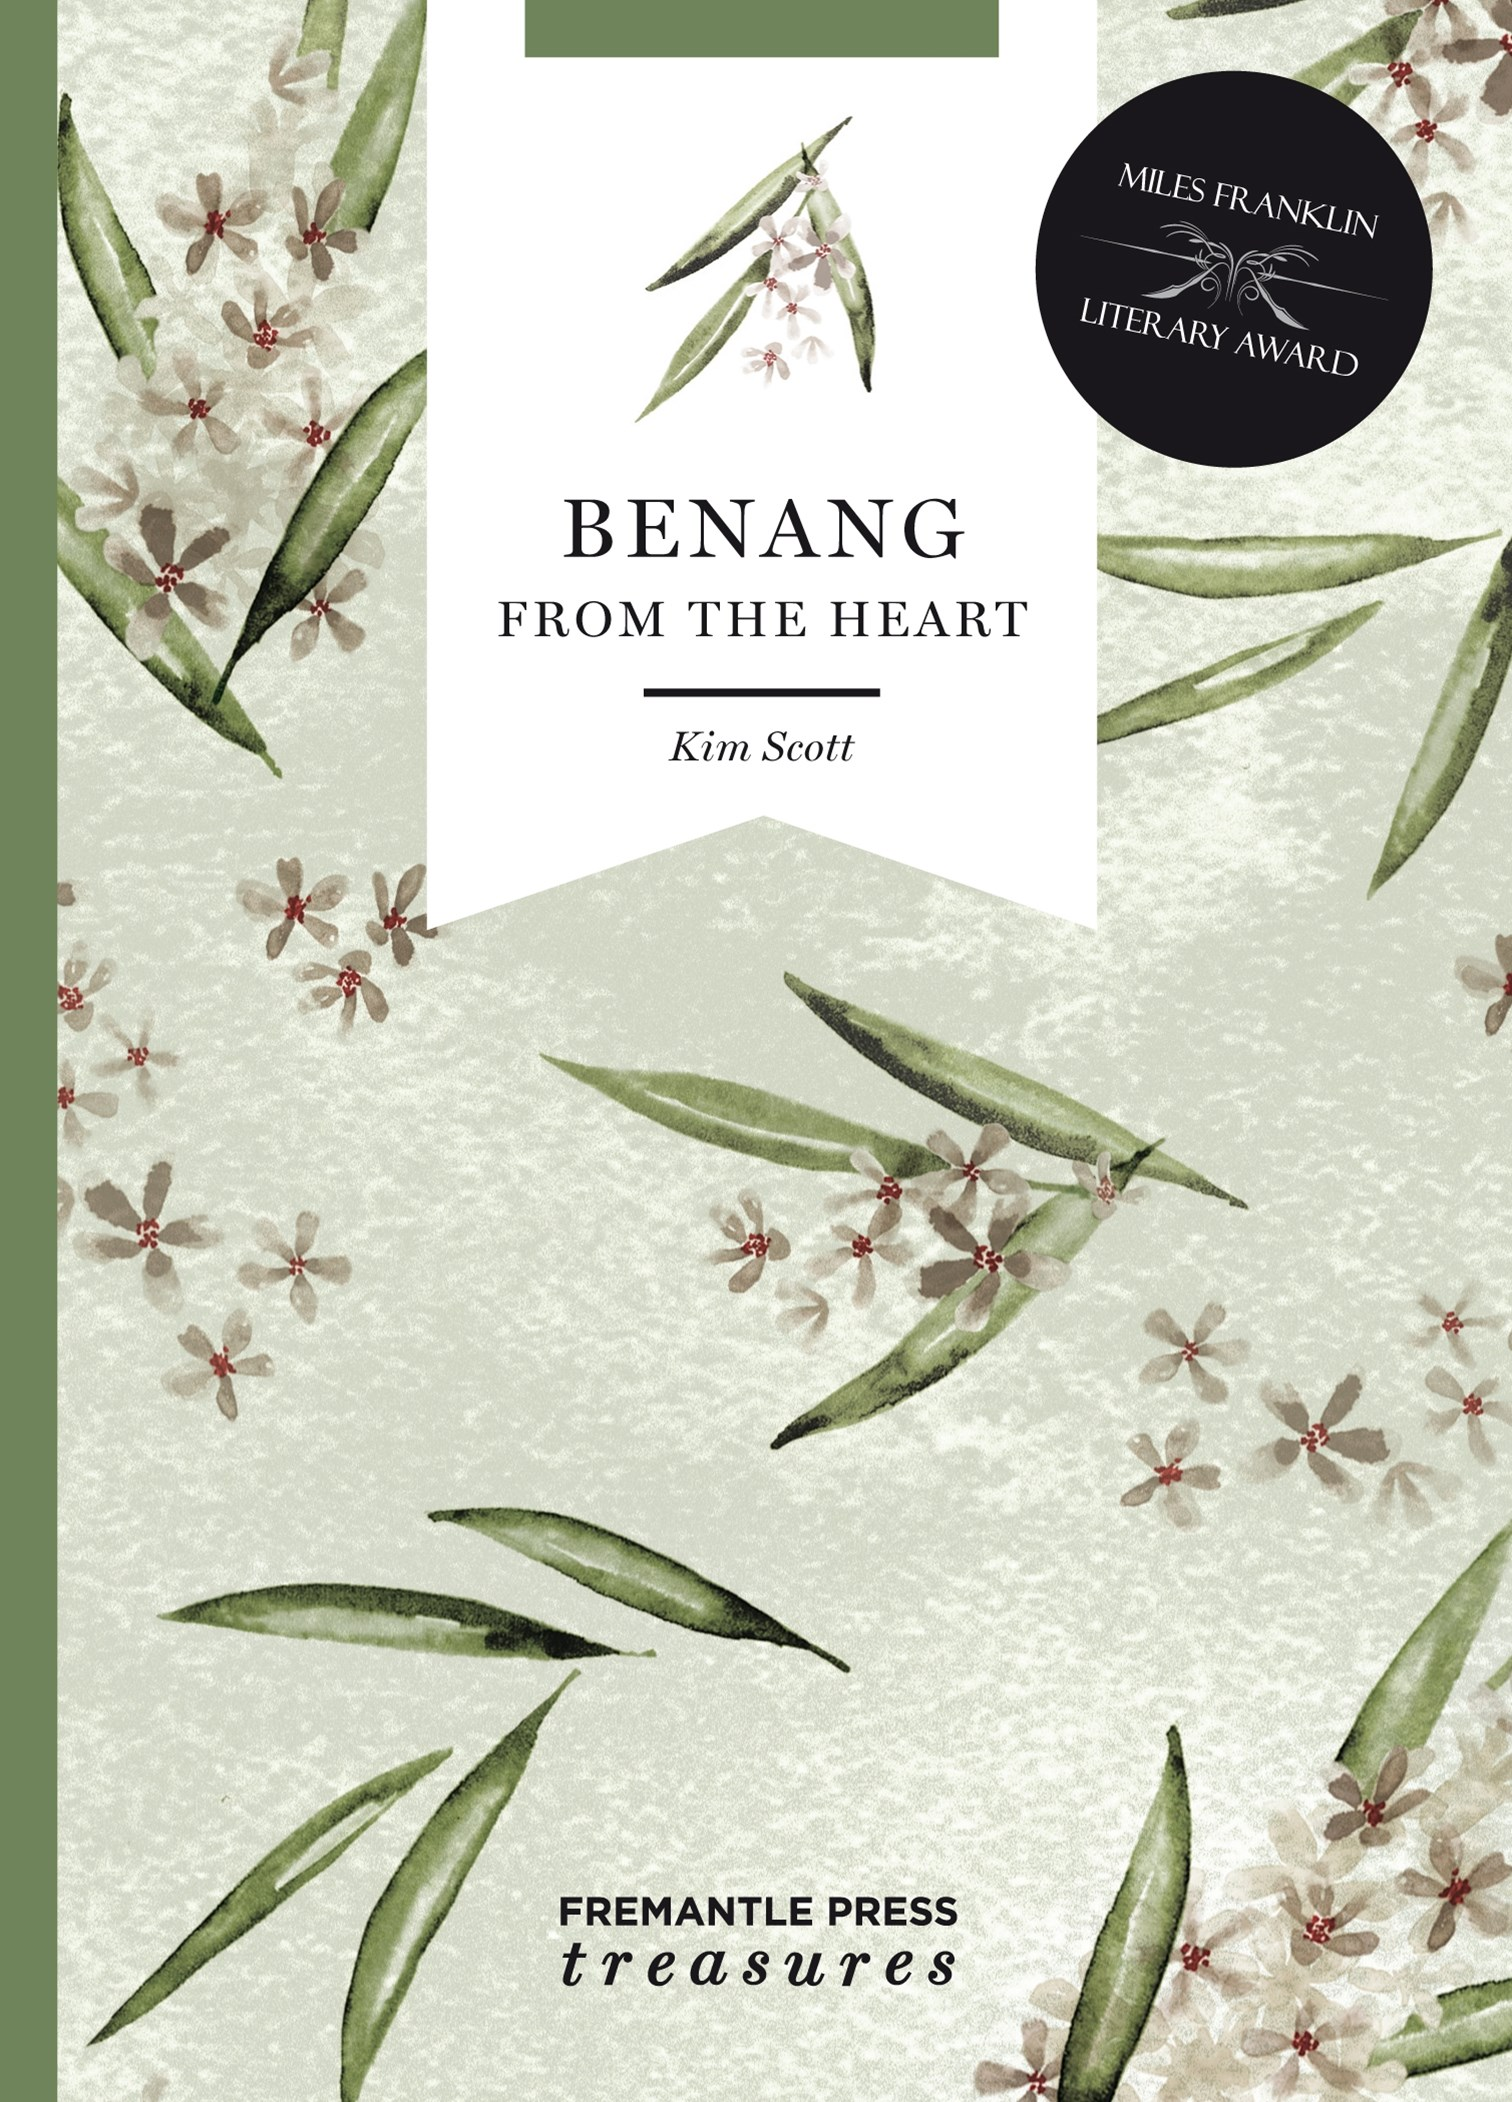 Benang: From the Heart: Fremantle Press Treasures